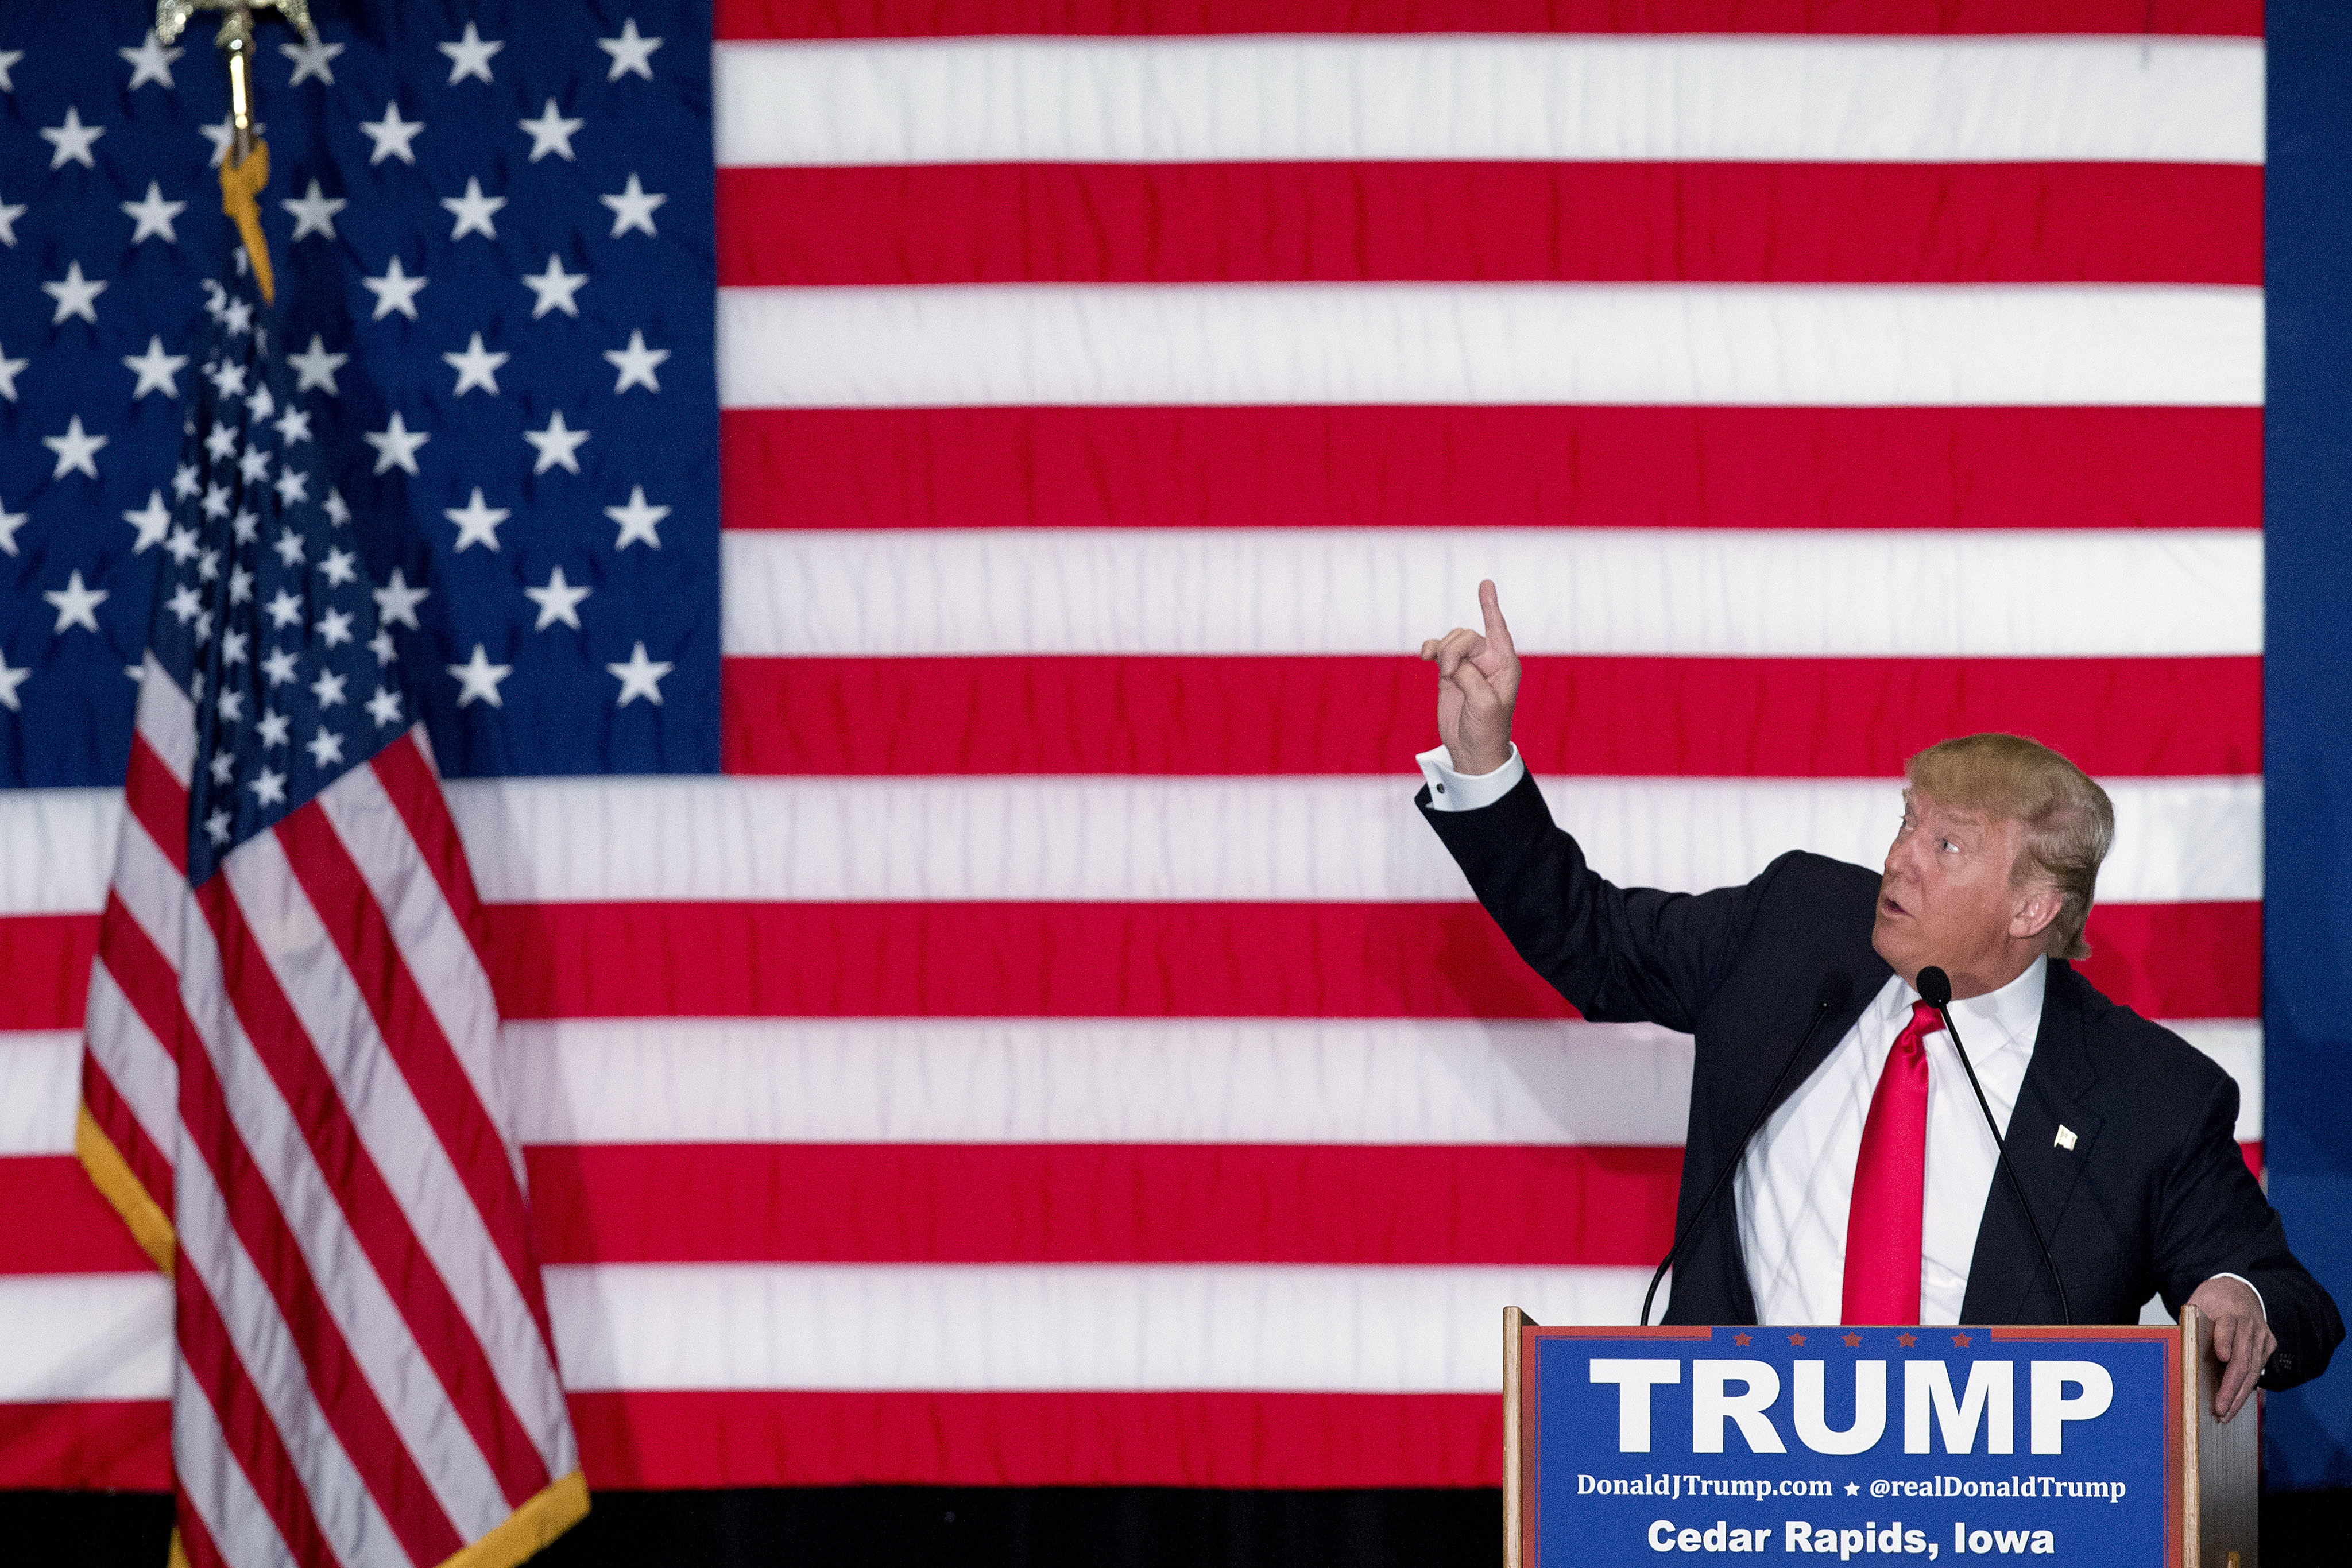 Republican presidential candidate Donald Trump speaks during a campaign event, Monday, Feb. 1, 2016, in Cedar Rapids, Iowa. (AP Photo/Mary Altaffer)